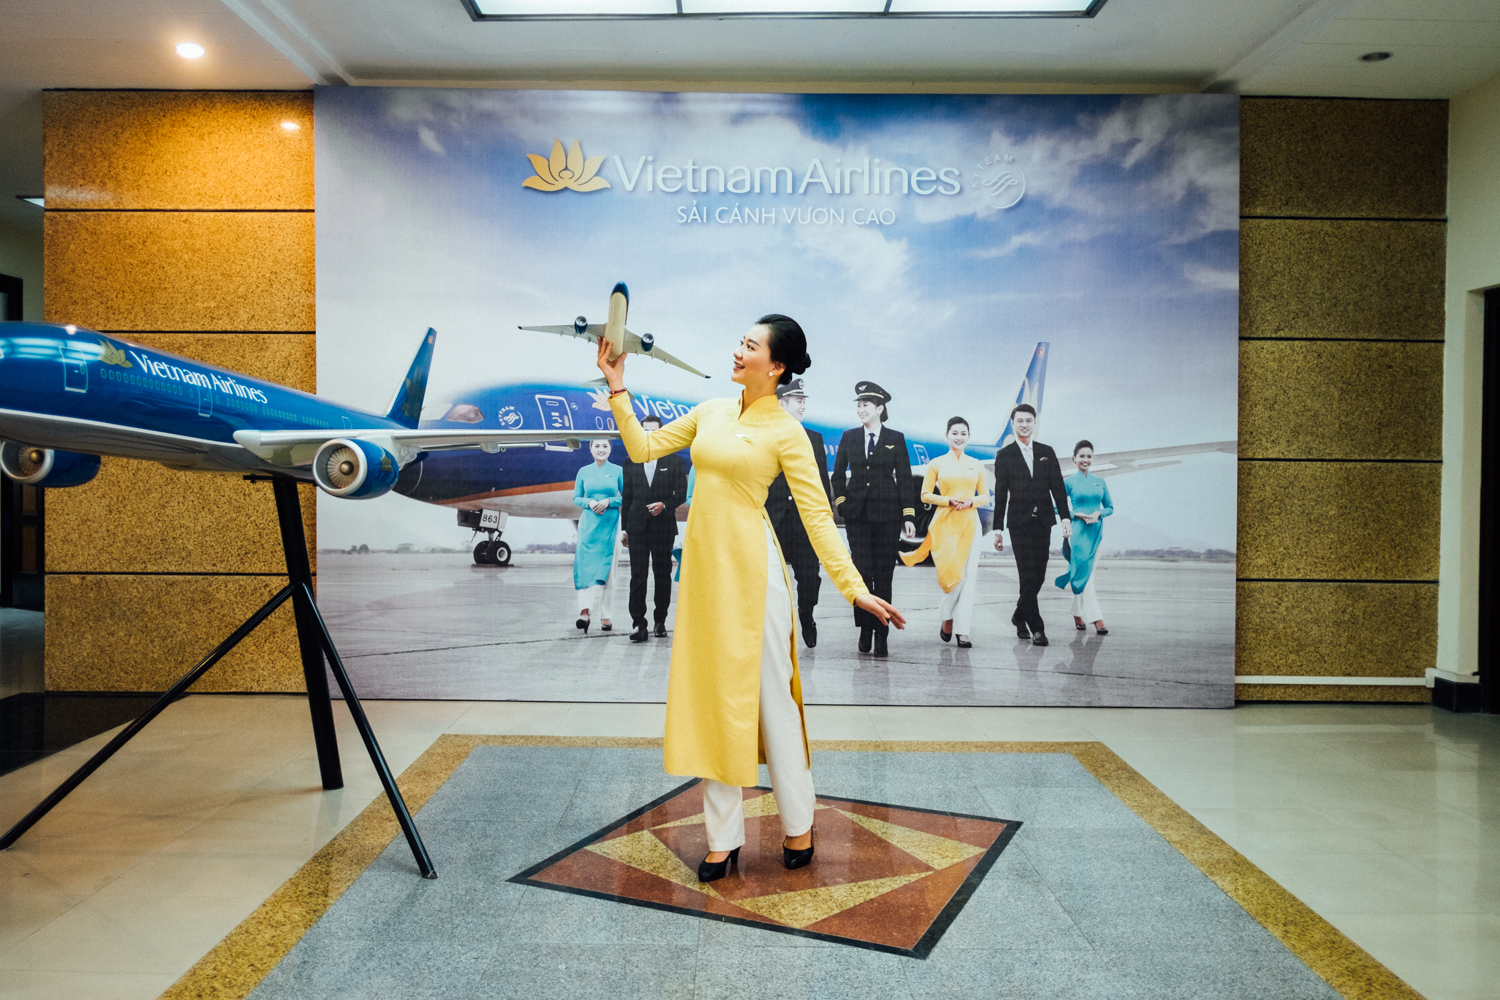 Monocle Magazine October 2016 A look into Vietnam Airlines